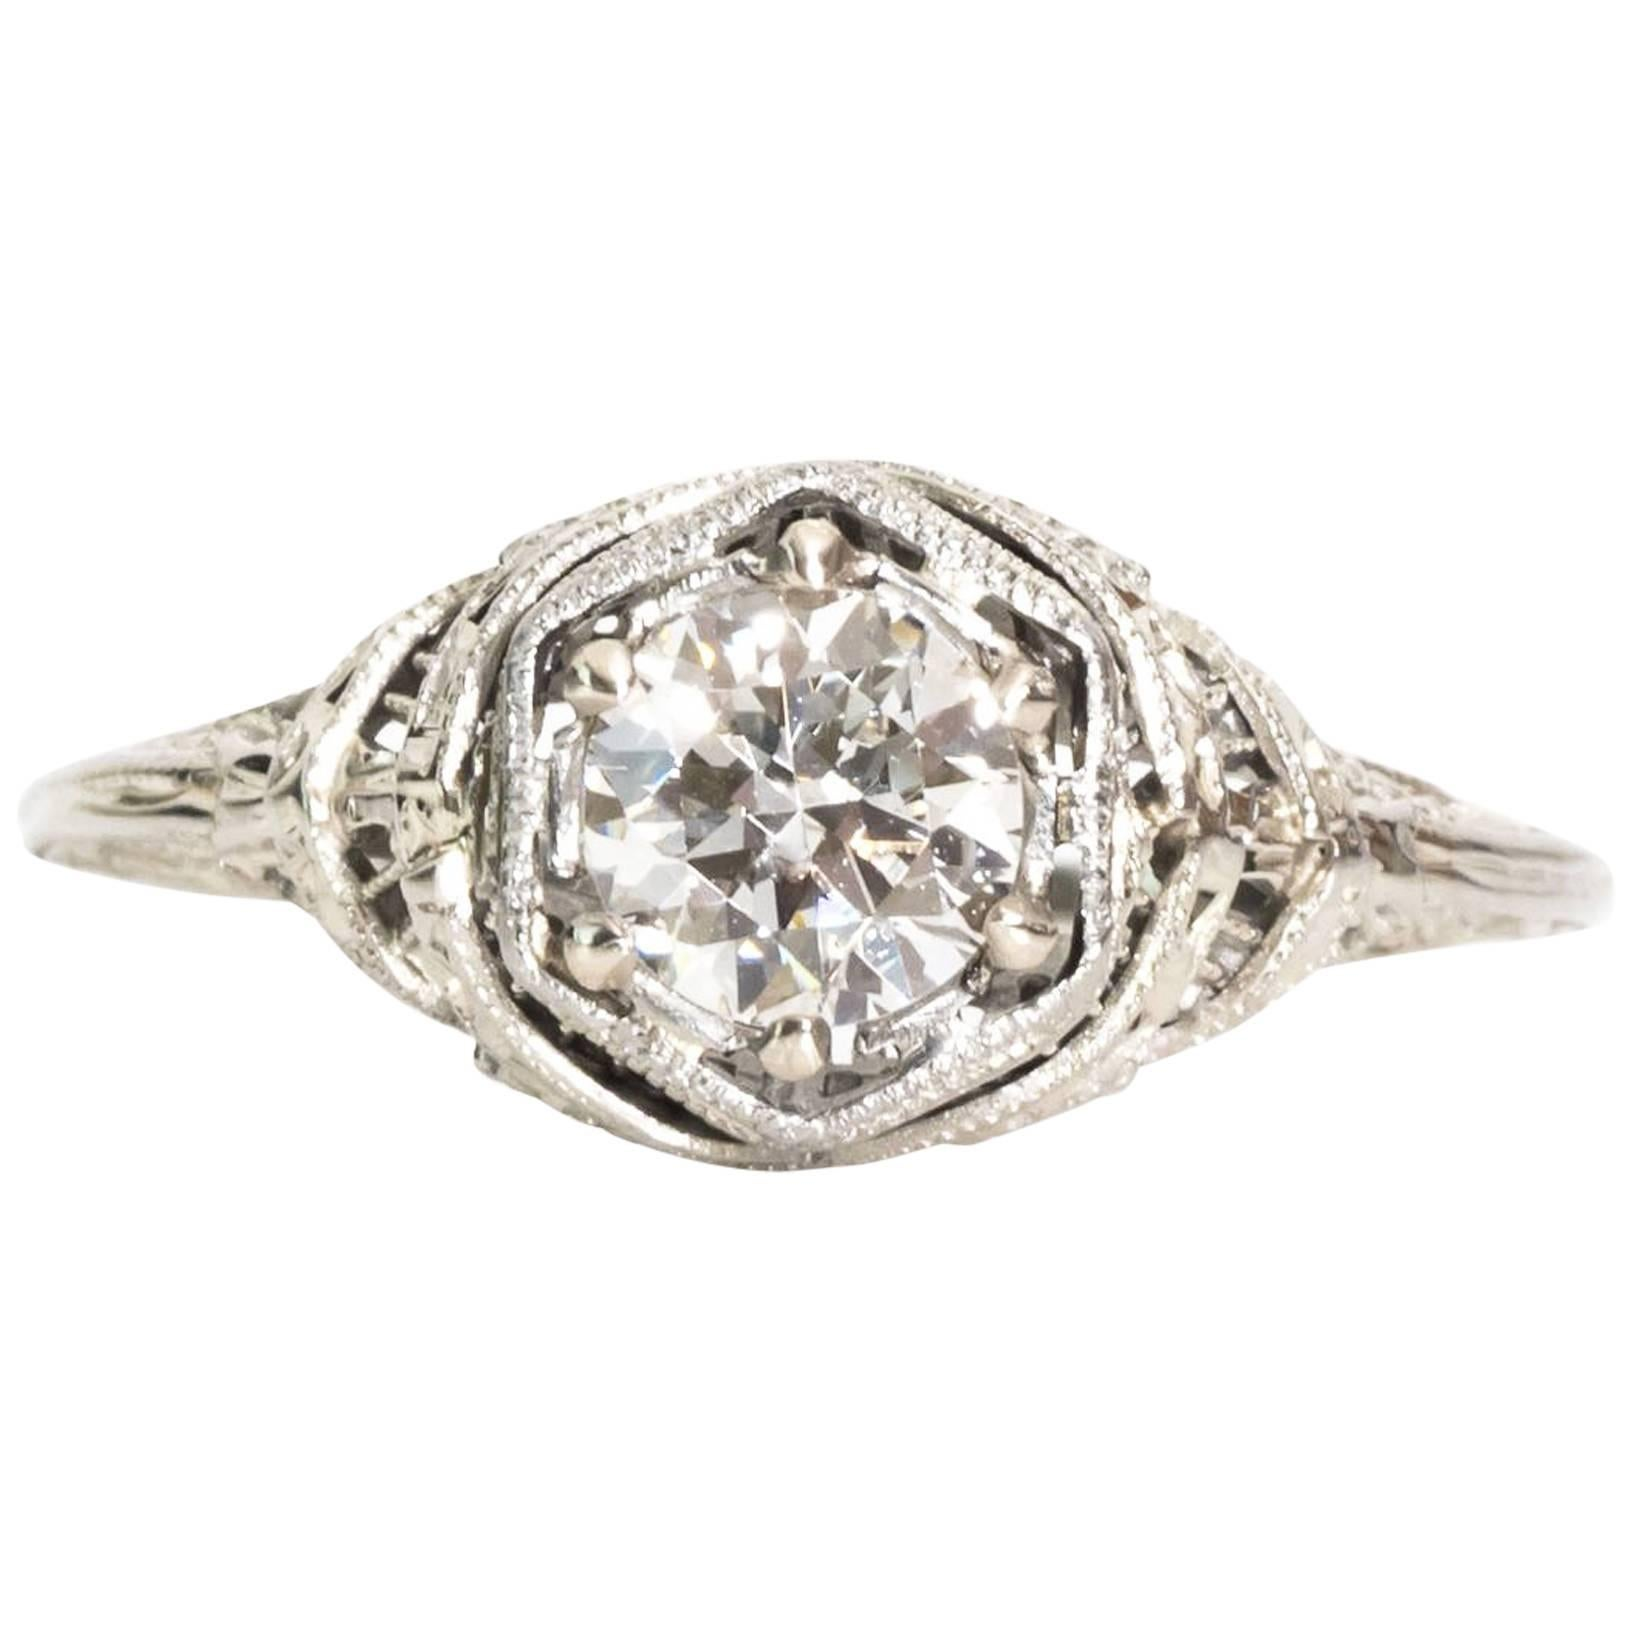 1940s Traditional GIA Certified Diamond Cathedral Engagement Ring